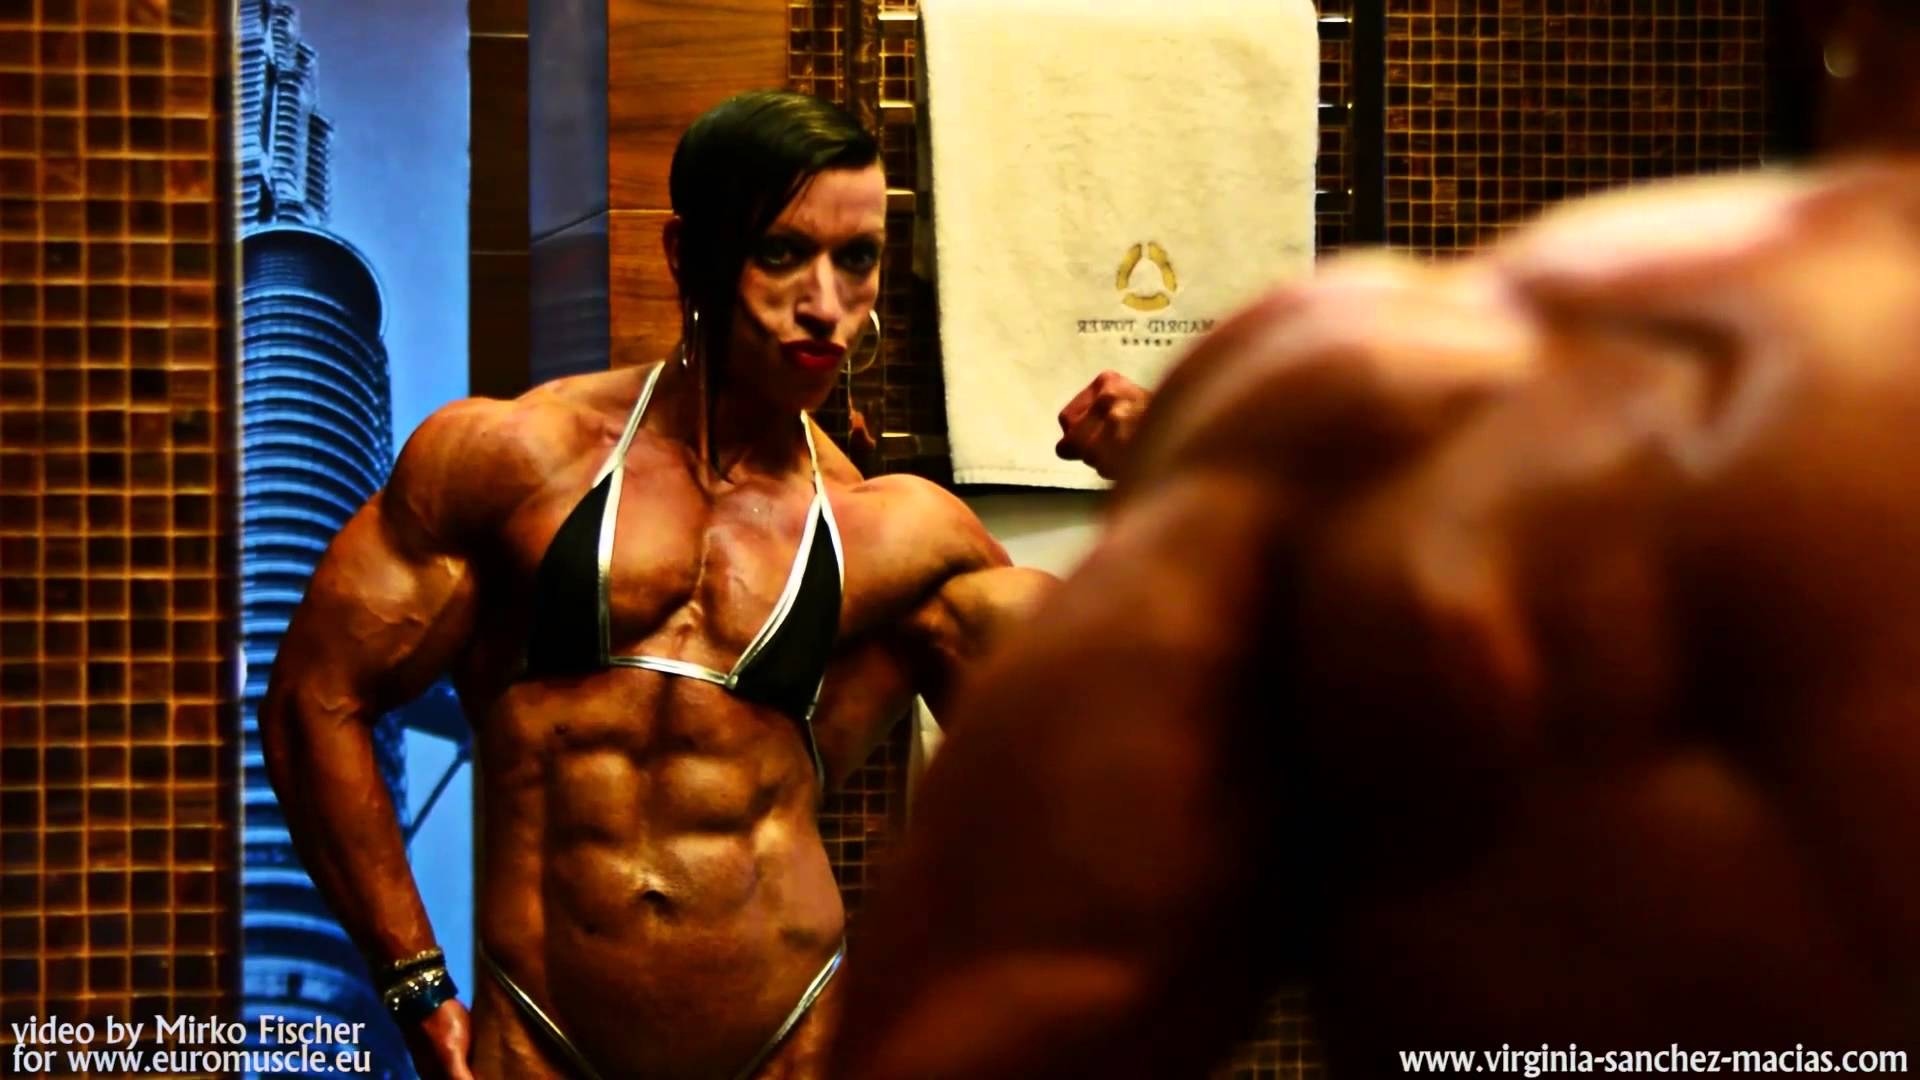 Olga Karavayeva – Flexing And Posing